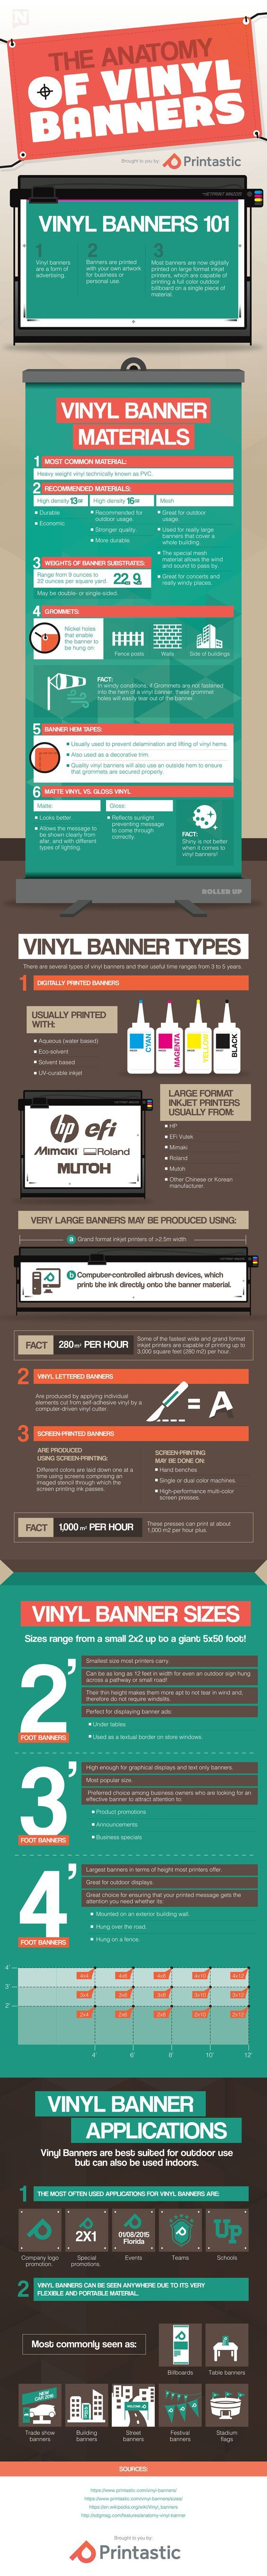 Great tips for getting the best use of your vinyl banner!